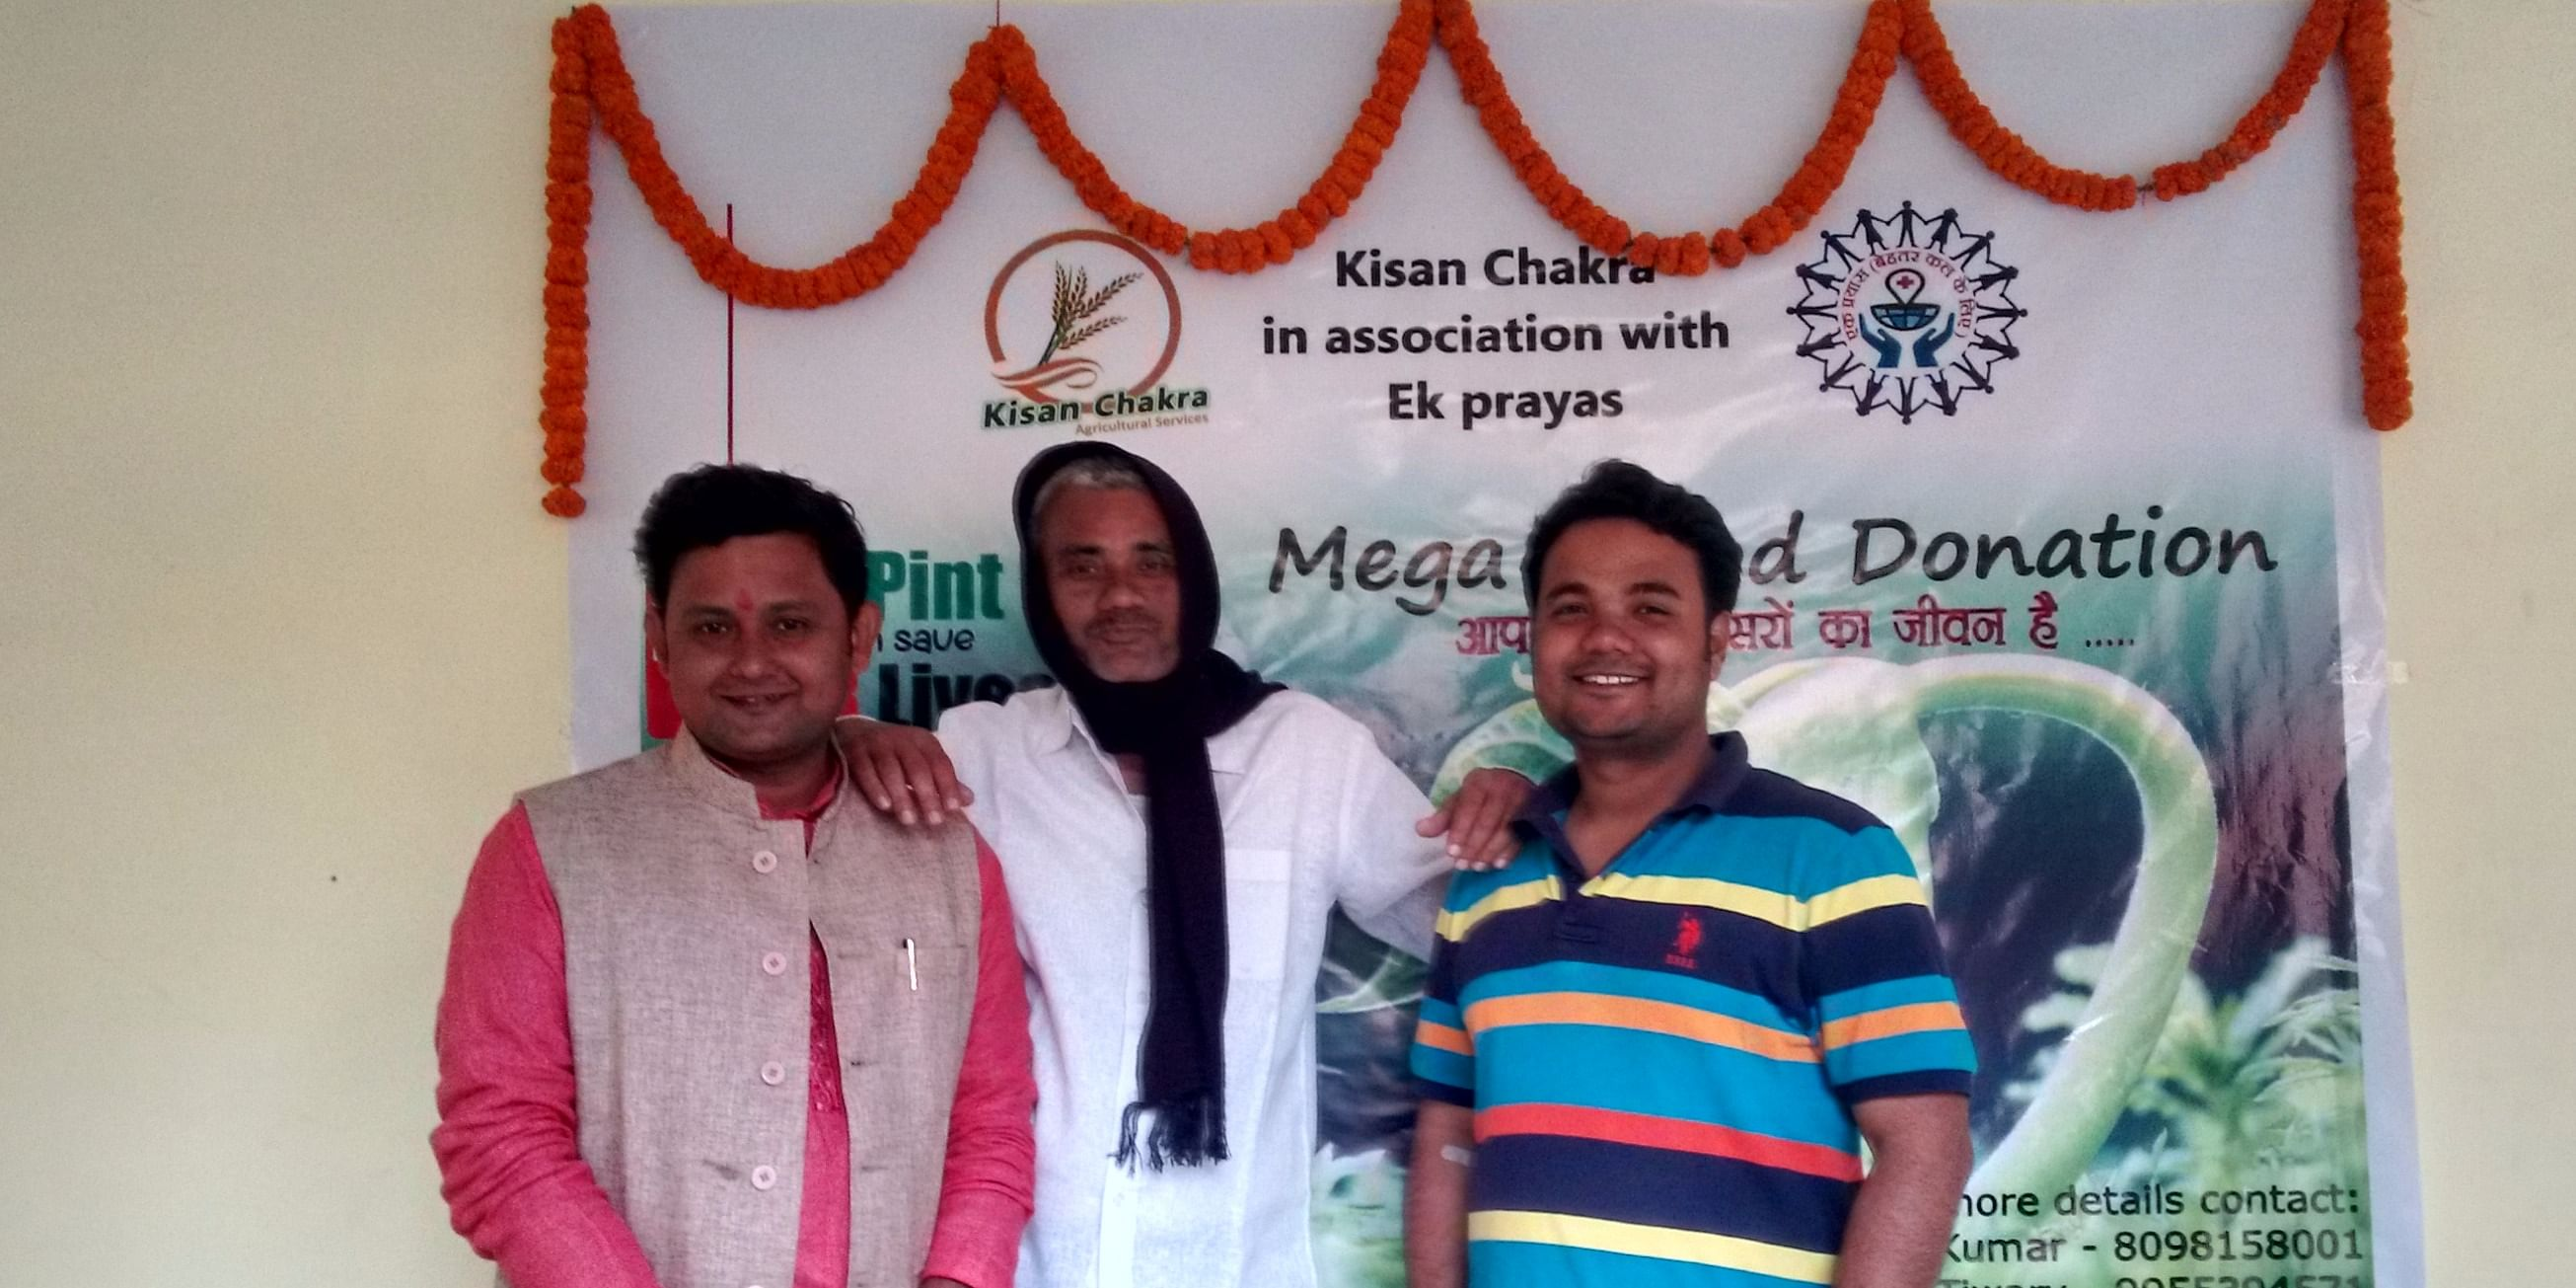 Mega blood donation camp conducted in our native village, Founder brothers with their Father.